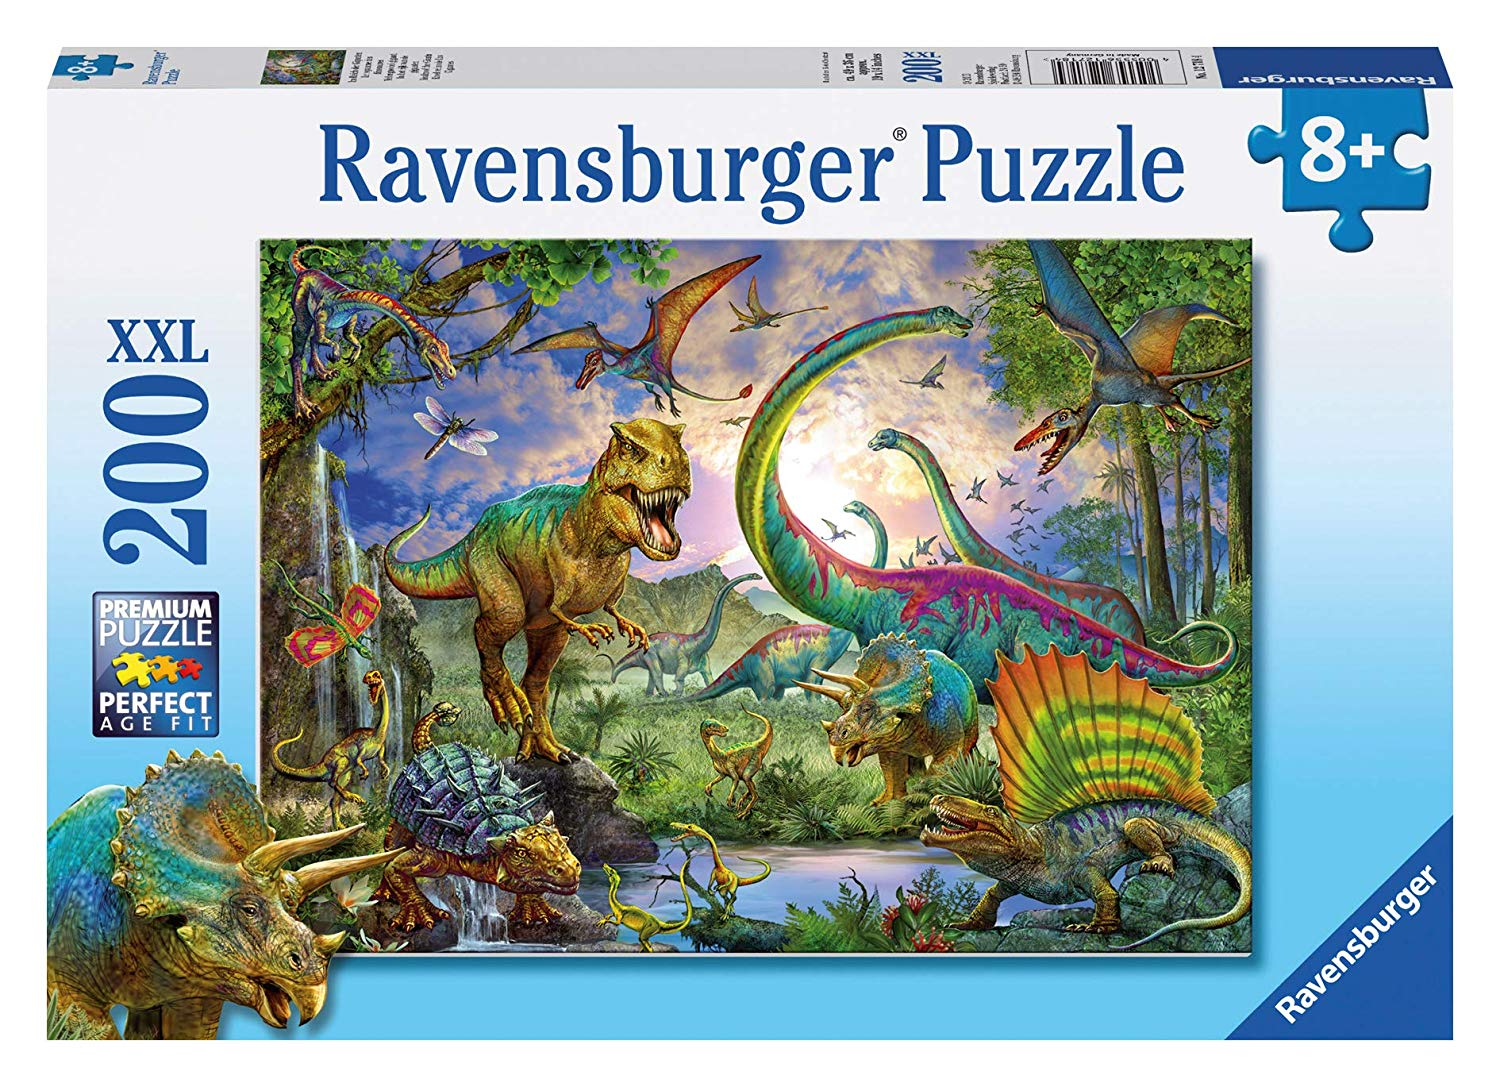 Dinosaur Ravensburger Puzzle photo